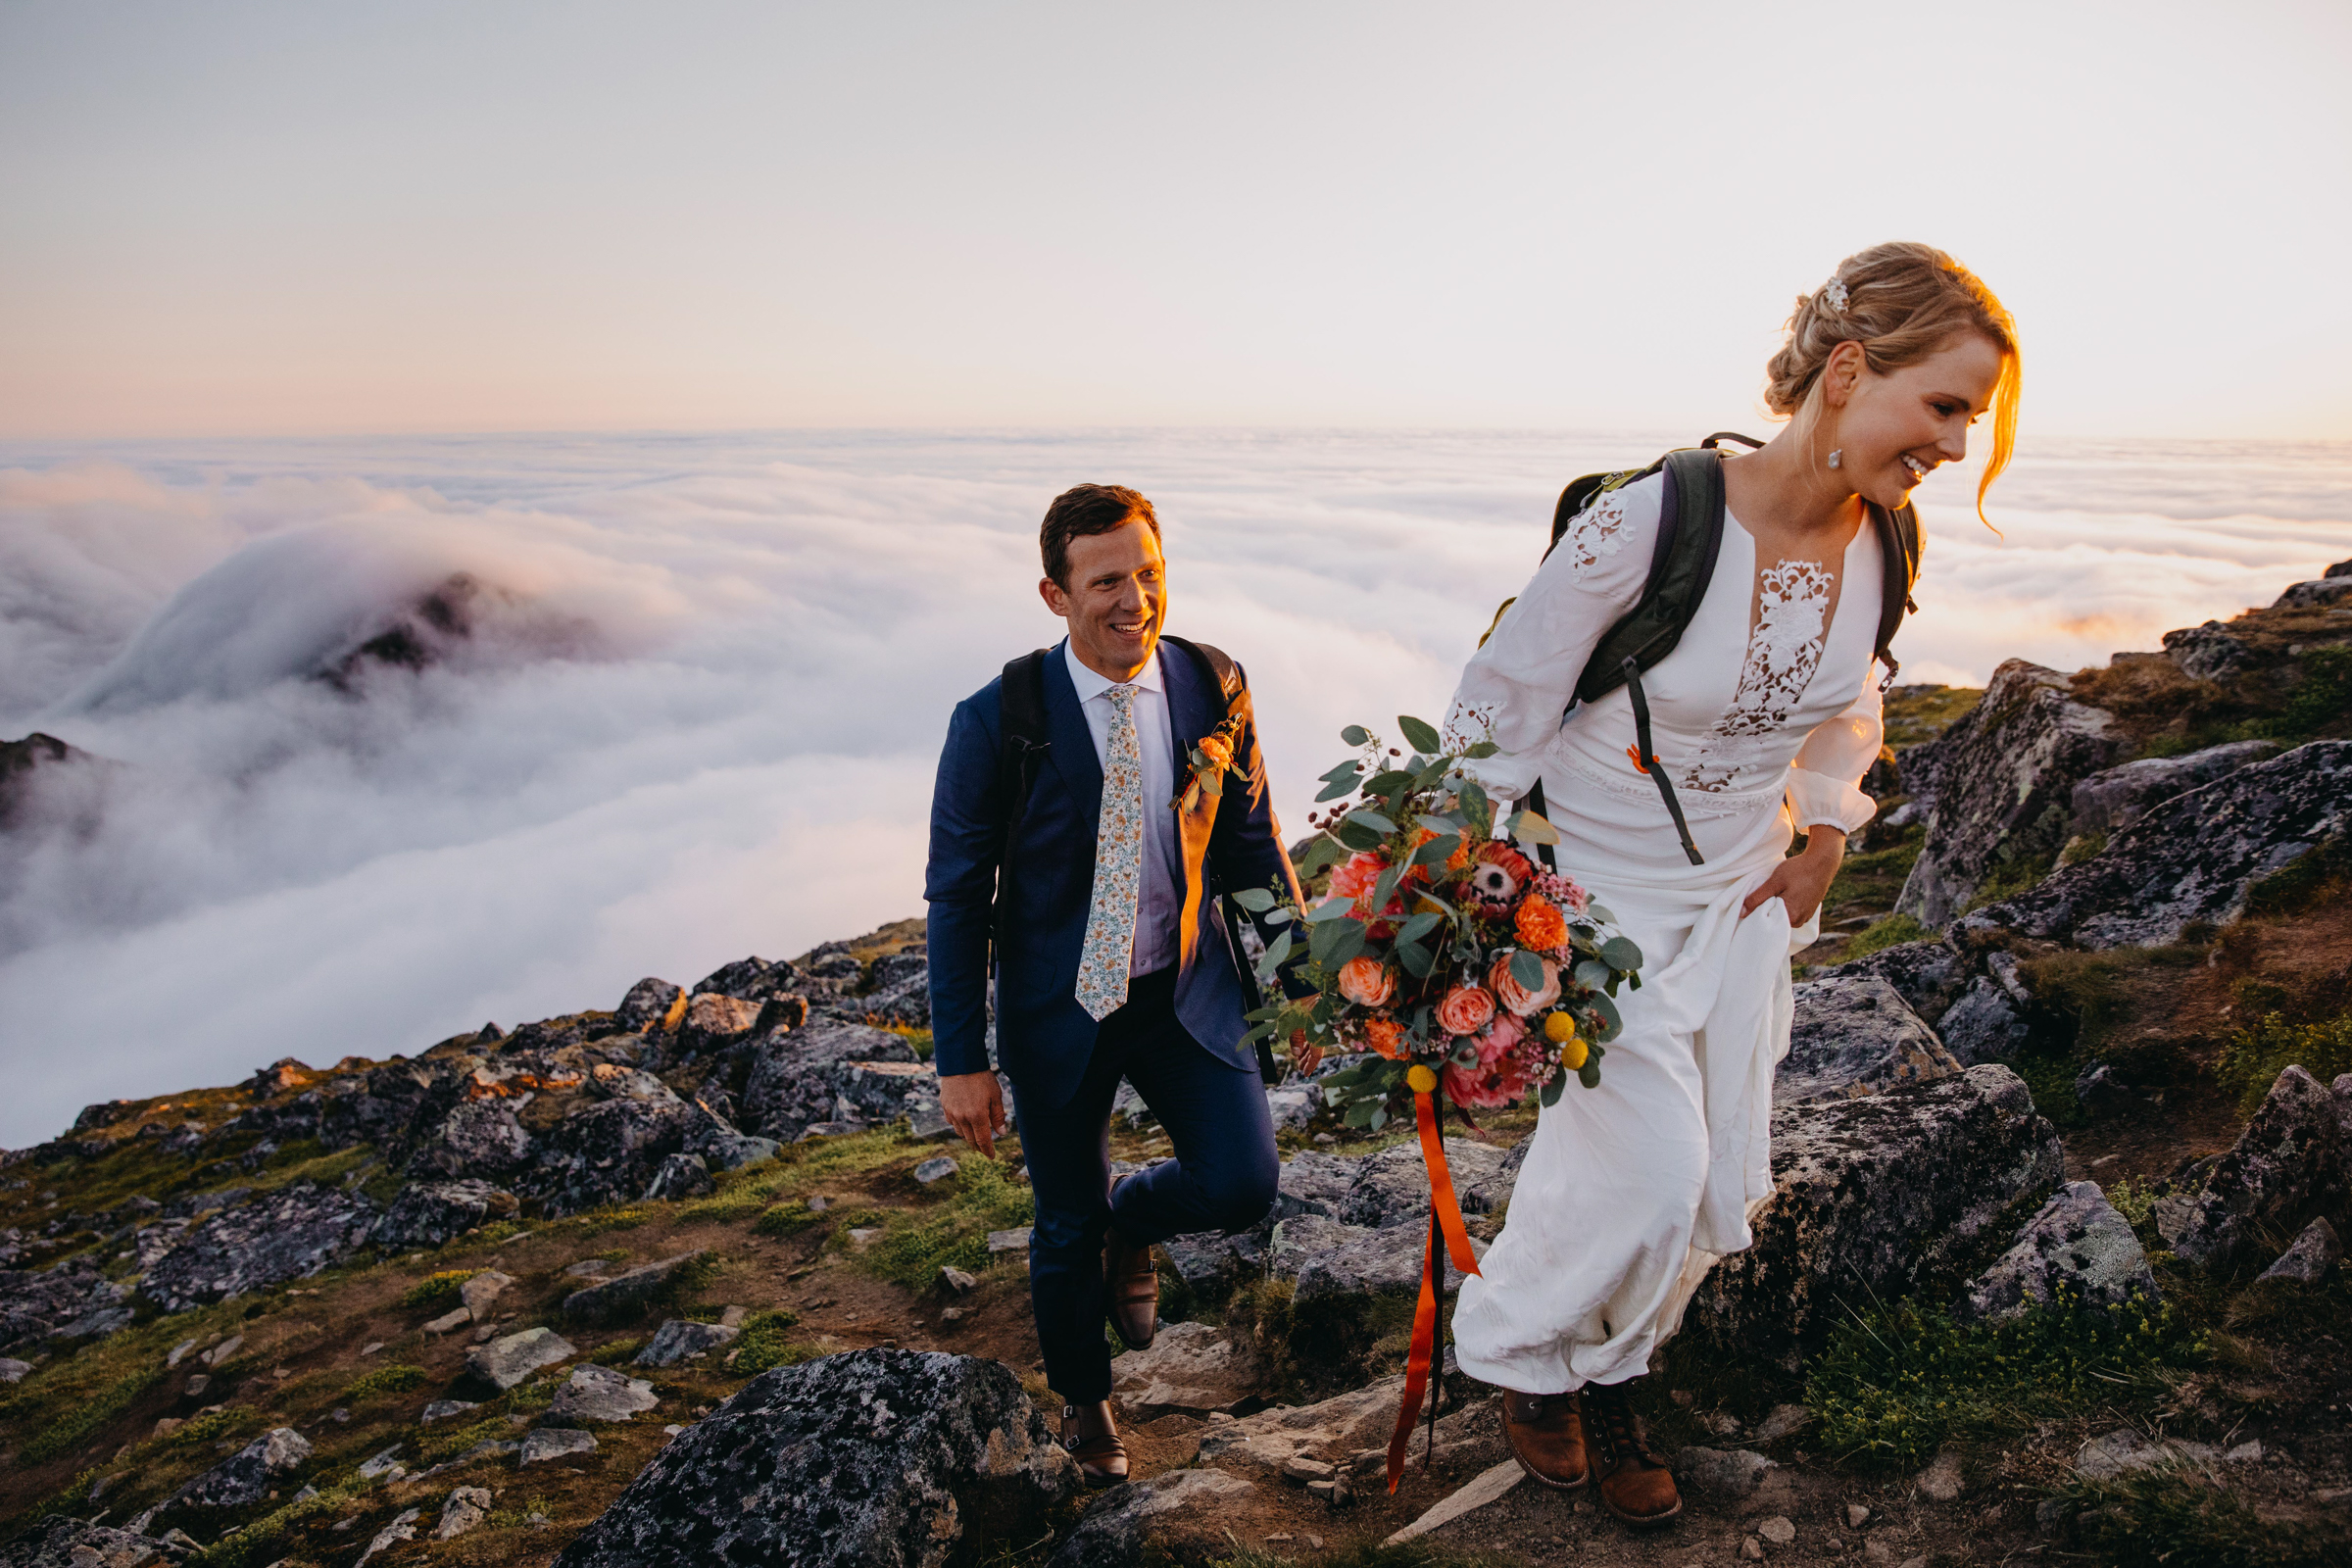 Couple on rocky trail above the clouds - photo by Christin Eide Photography